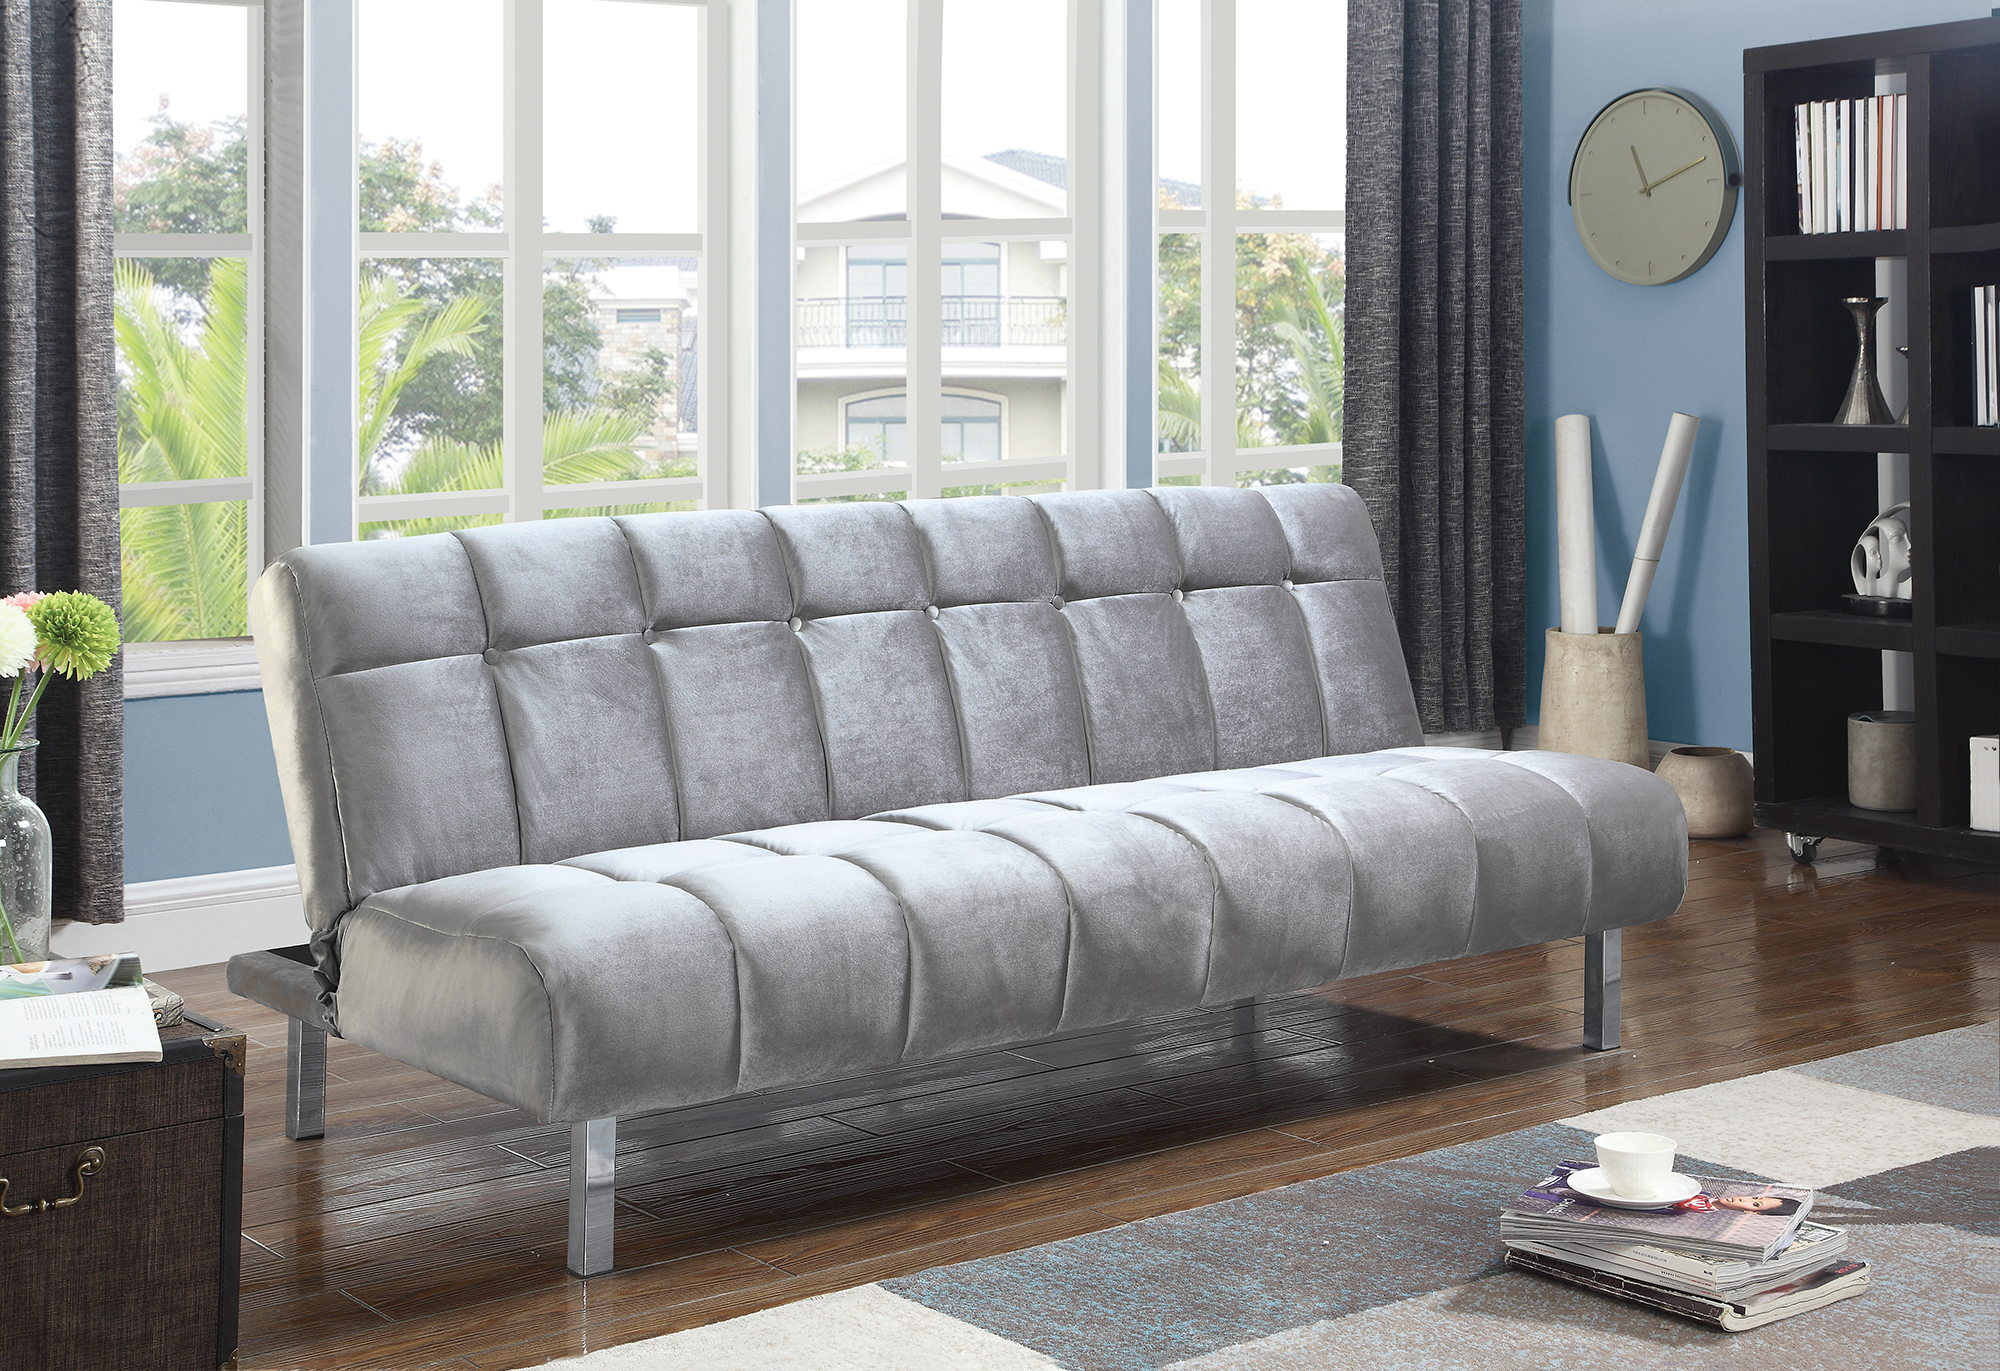 Ebay Sofa Grey Details About Coaster Fabric Sofa Bed With Grey Finish 360002